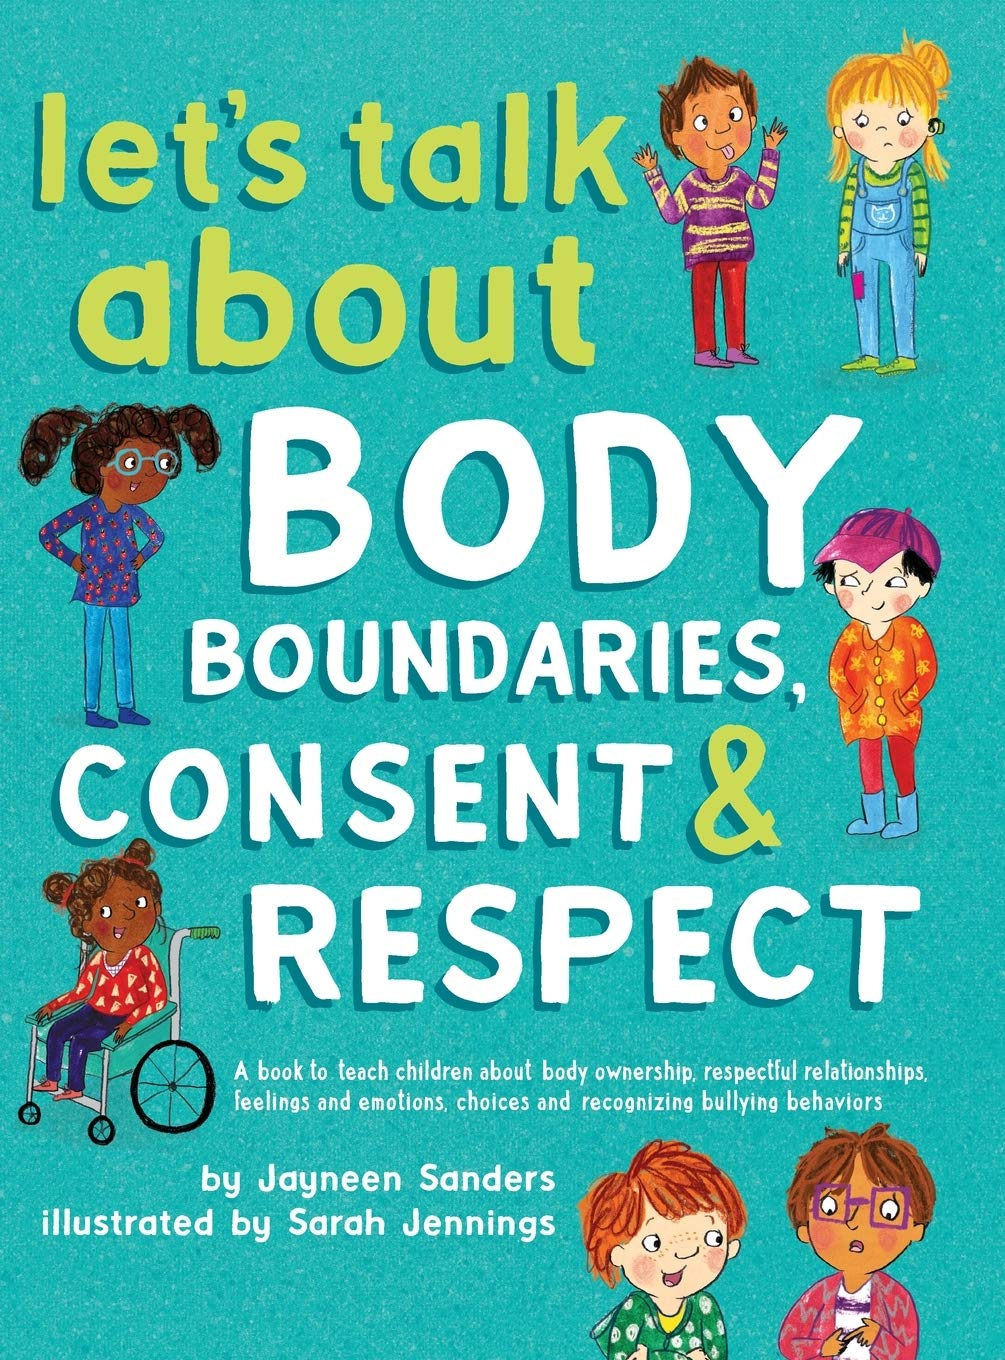 Let's Talk About Body Boundaries Consent and Respect: Teach children about body ownership respect feelings choices and recognizing bullying behaviors